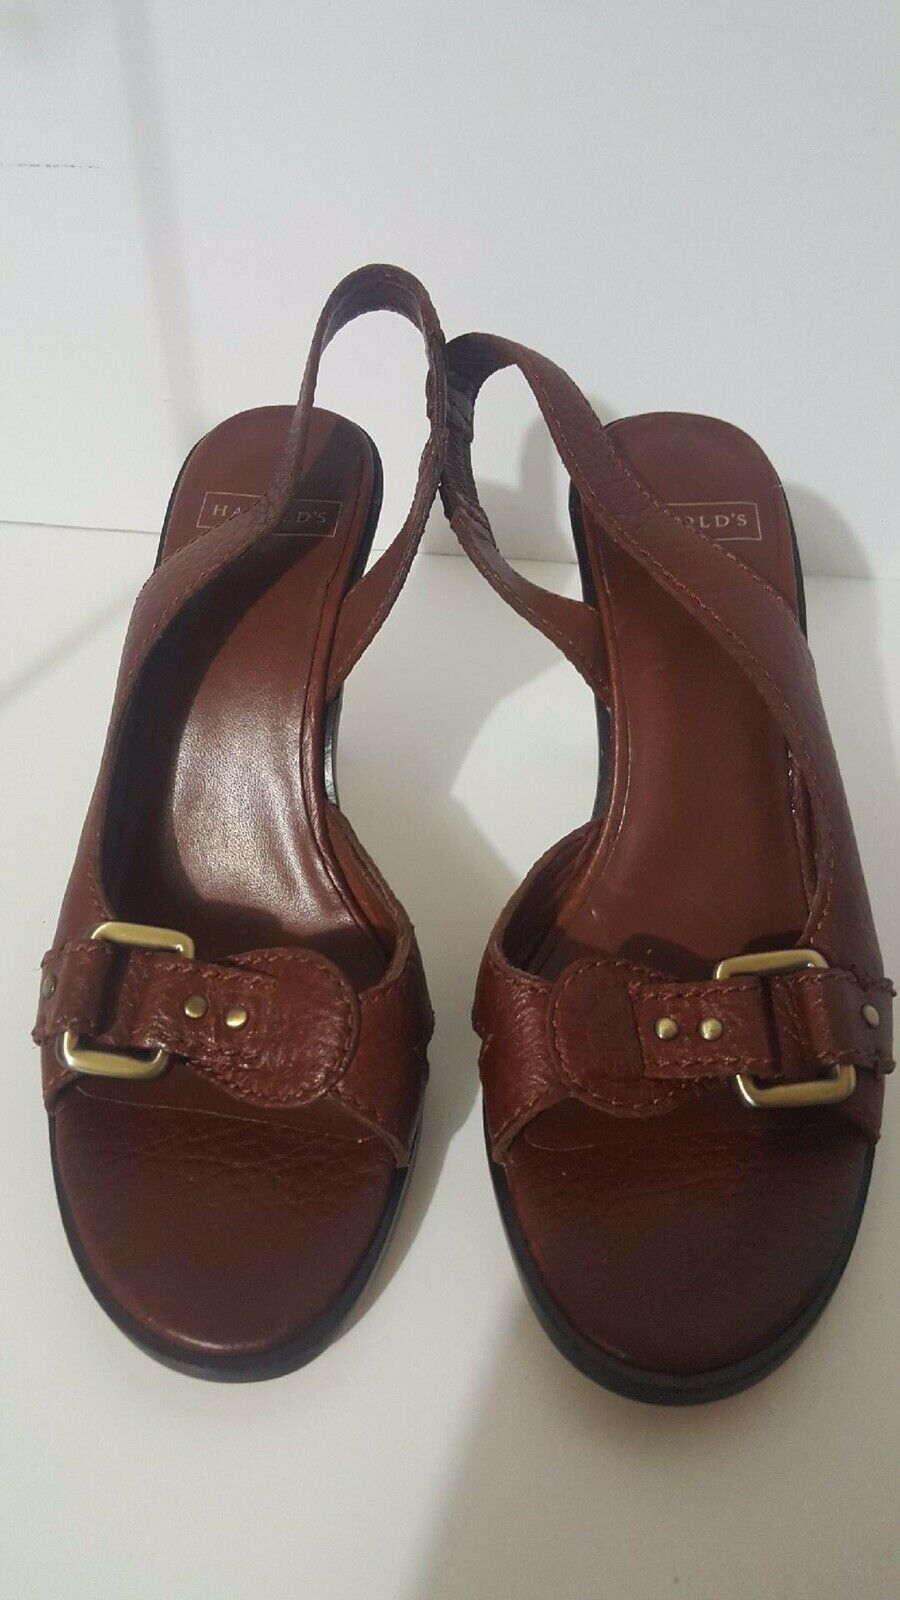 Harold's Women's Leather Slingback Pumps shoes Sz 7 1 2 New Display Pair